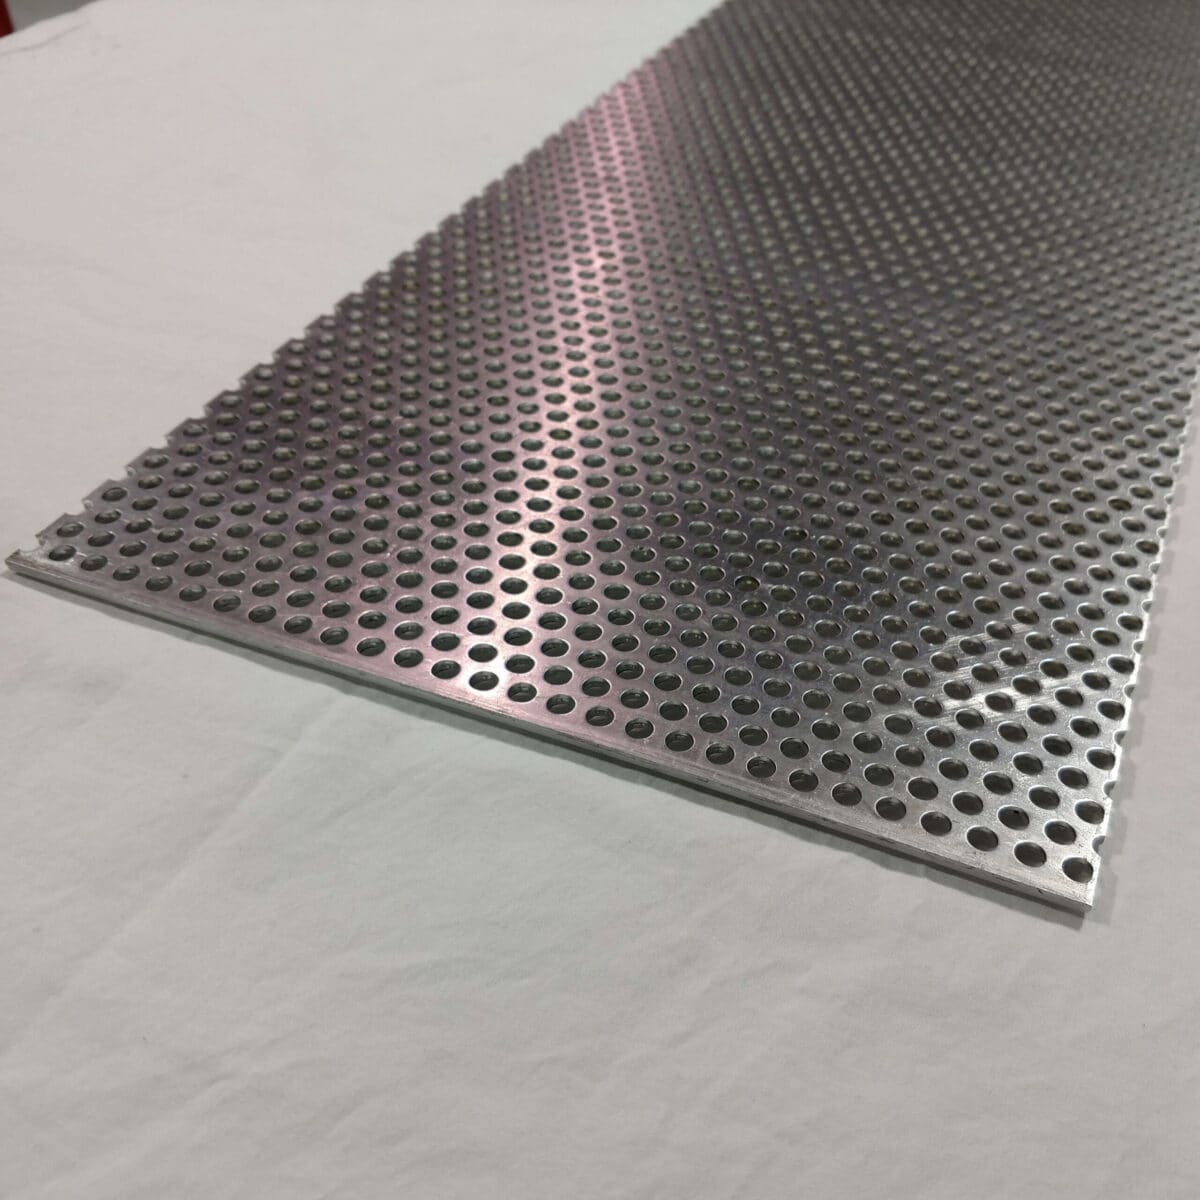 Aluminum Perforated Sheet 1 8 Thick 1 4 Hole 3 8 Stagger Various Sizes Dogboxparts